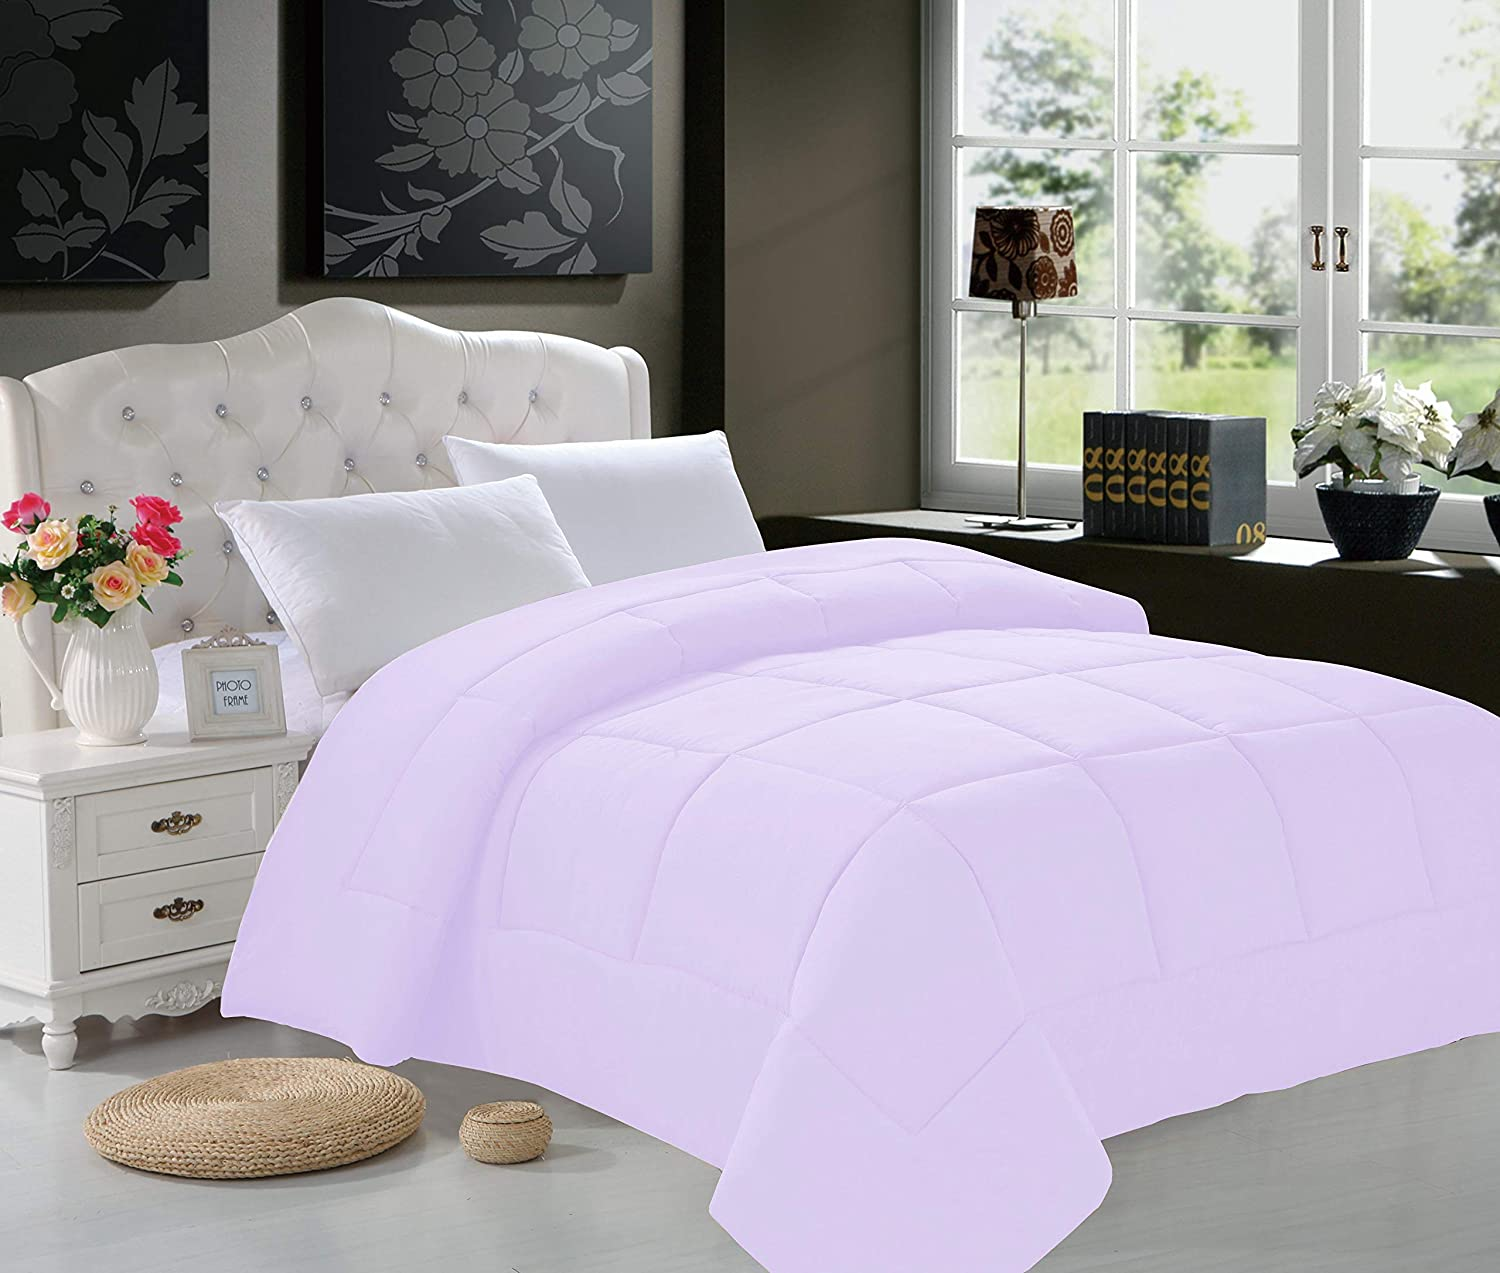 Elegant Comfort Luxury Goose Down Alternative Double-Filled Comforter, Twin, Lilac